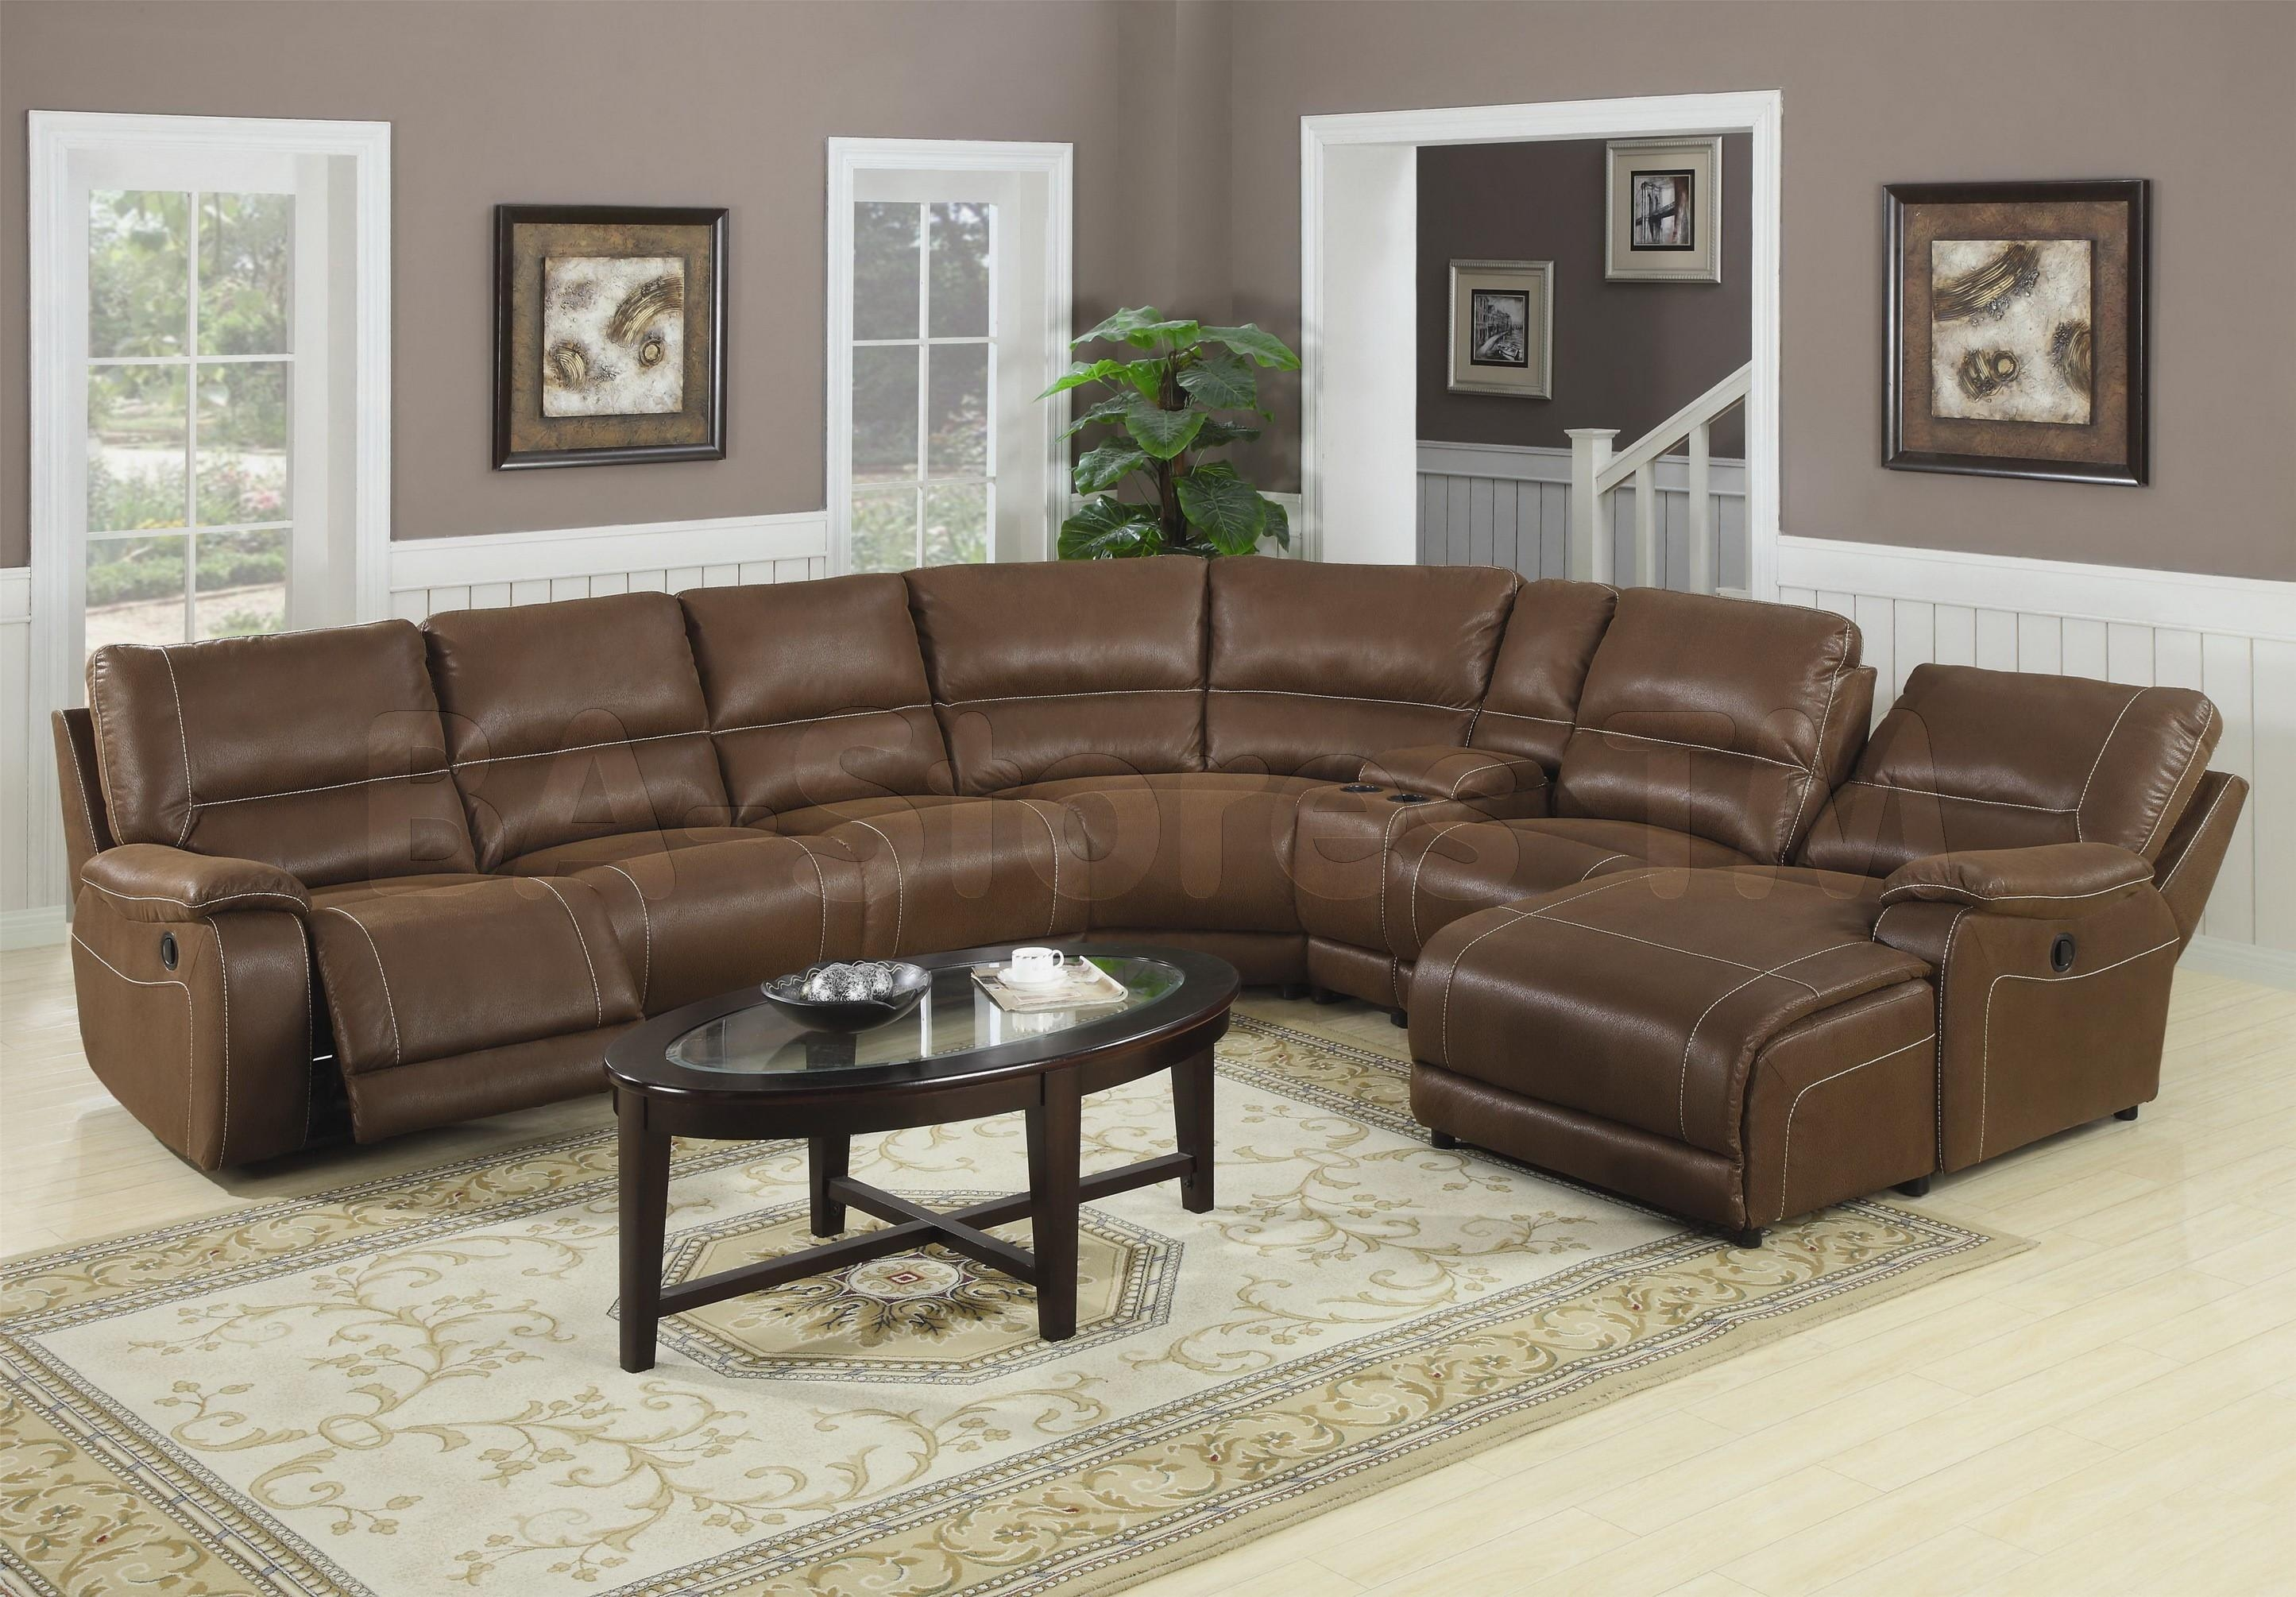 Decorating: Fill Your Home With Comfy Costco Sectionals Sofa For Inside Berkline Couches (Image 5 of 20)